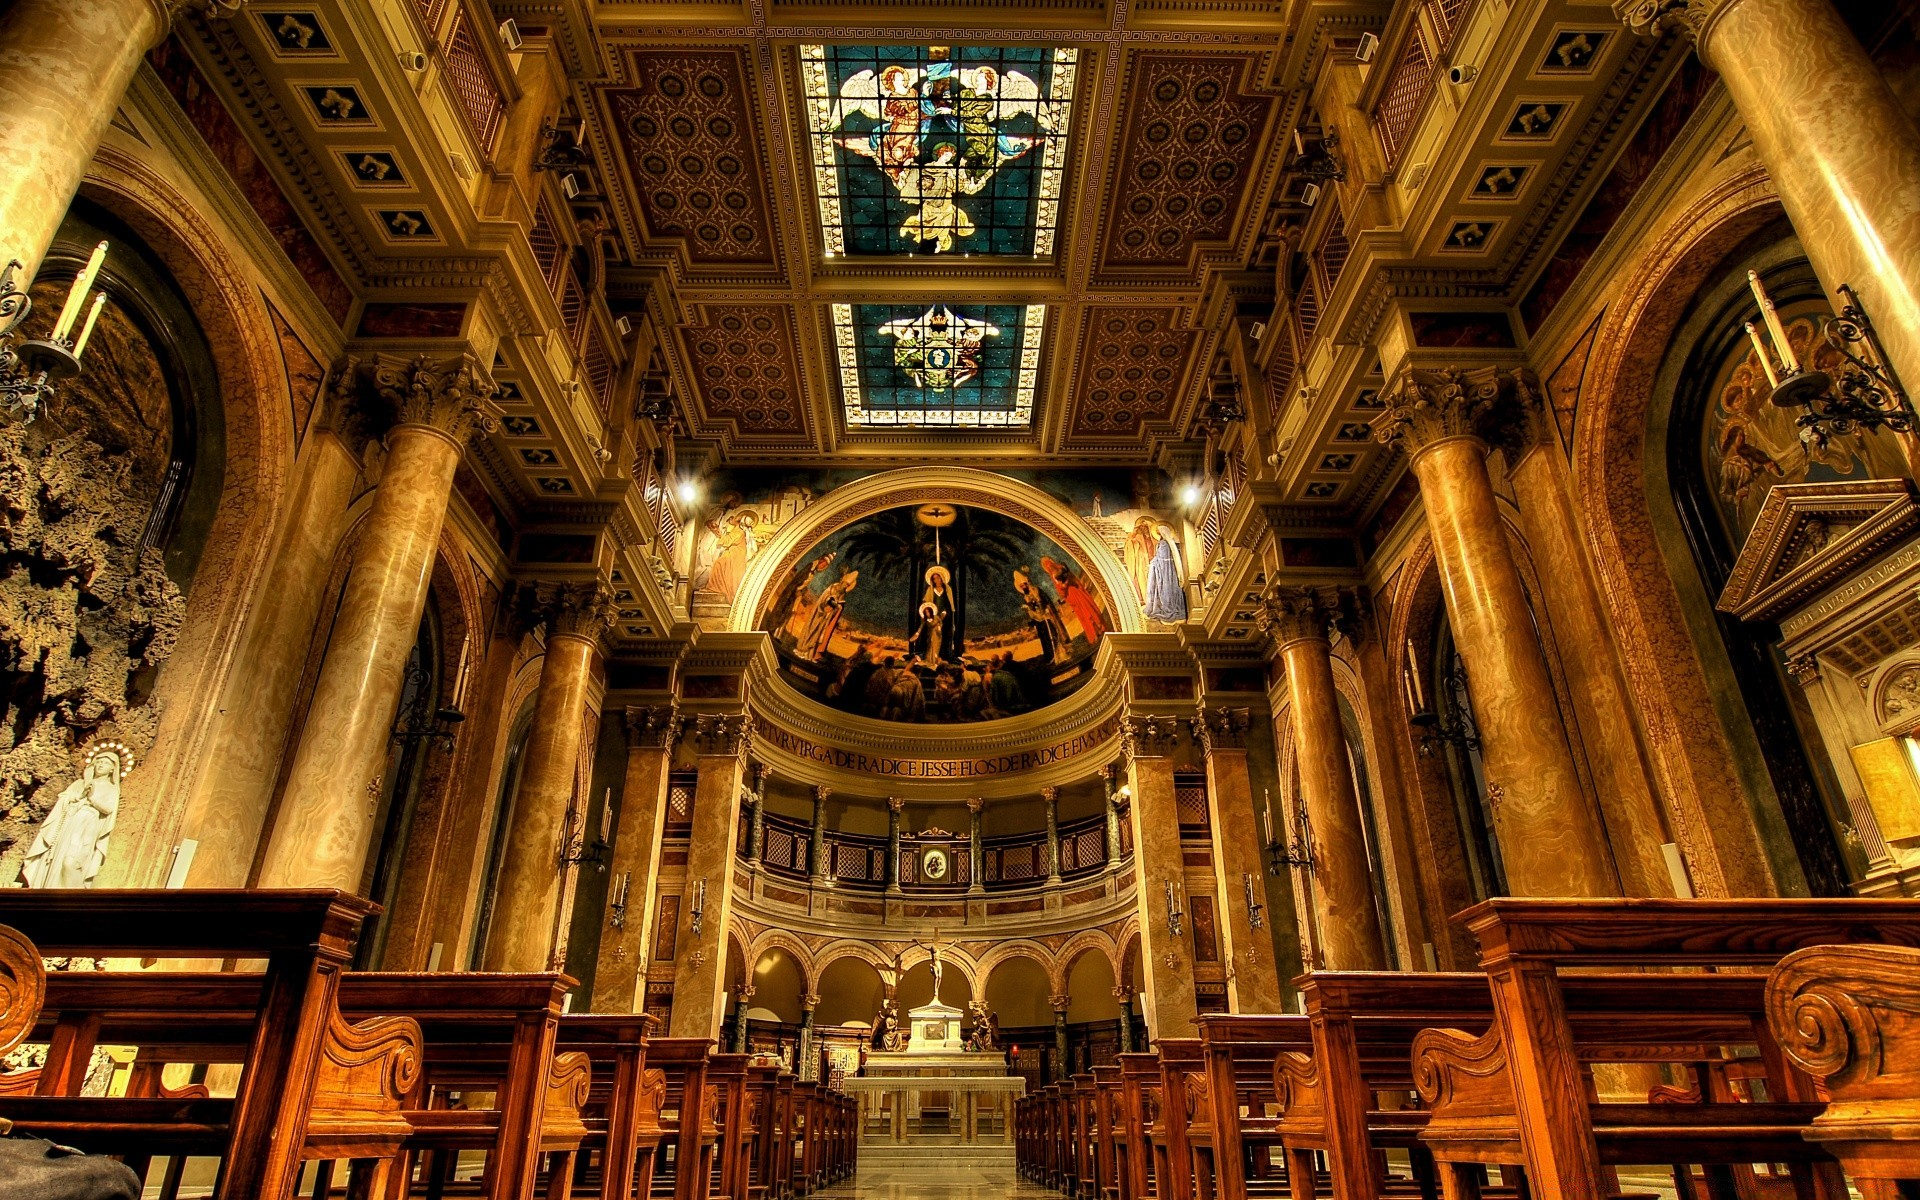 house and comfort church architecture travel religion cathedral art building indoors inside old ceiling sculpture